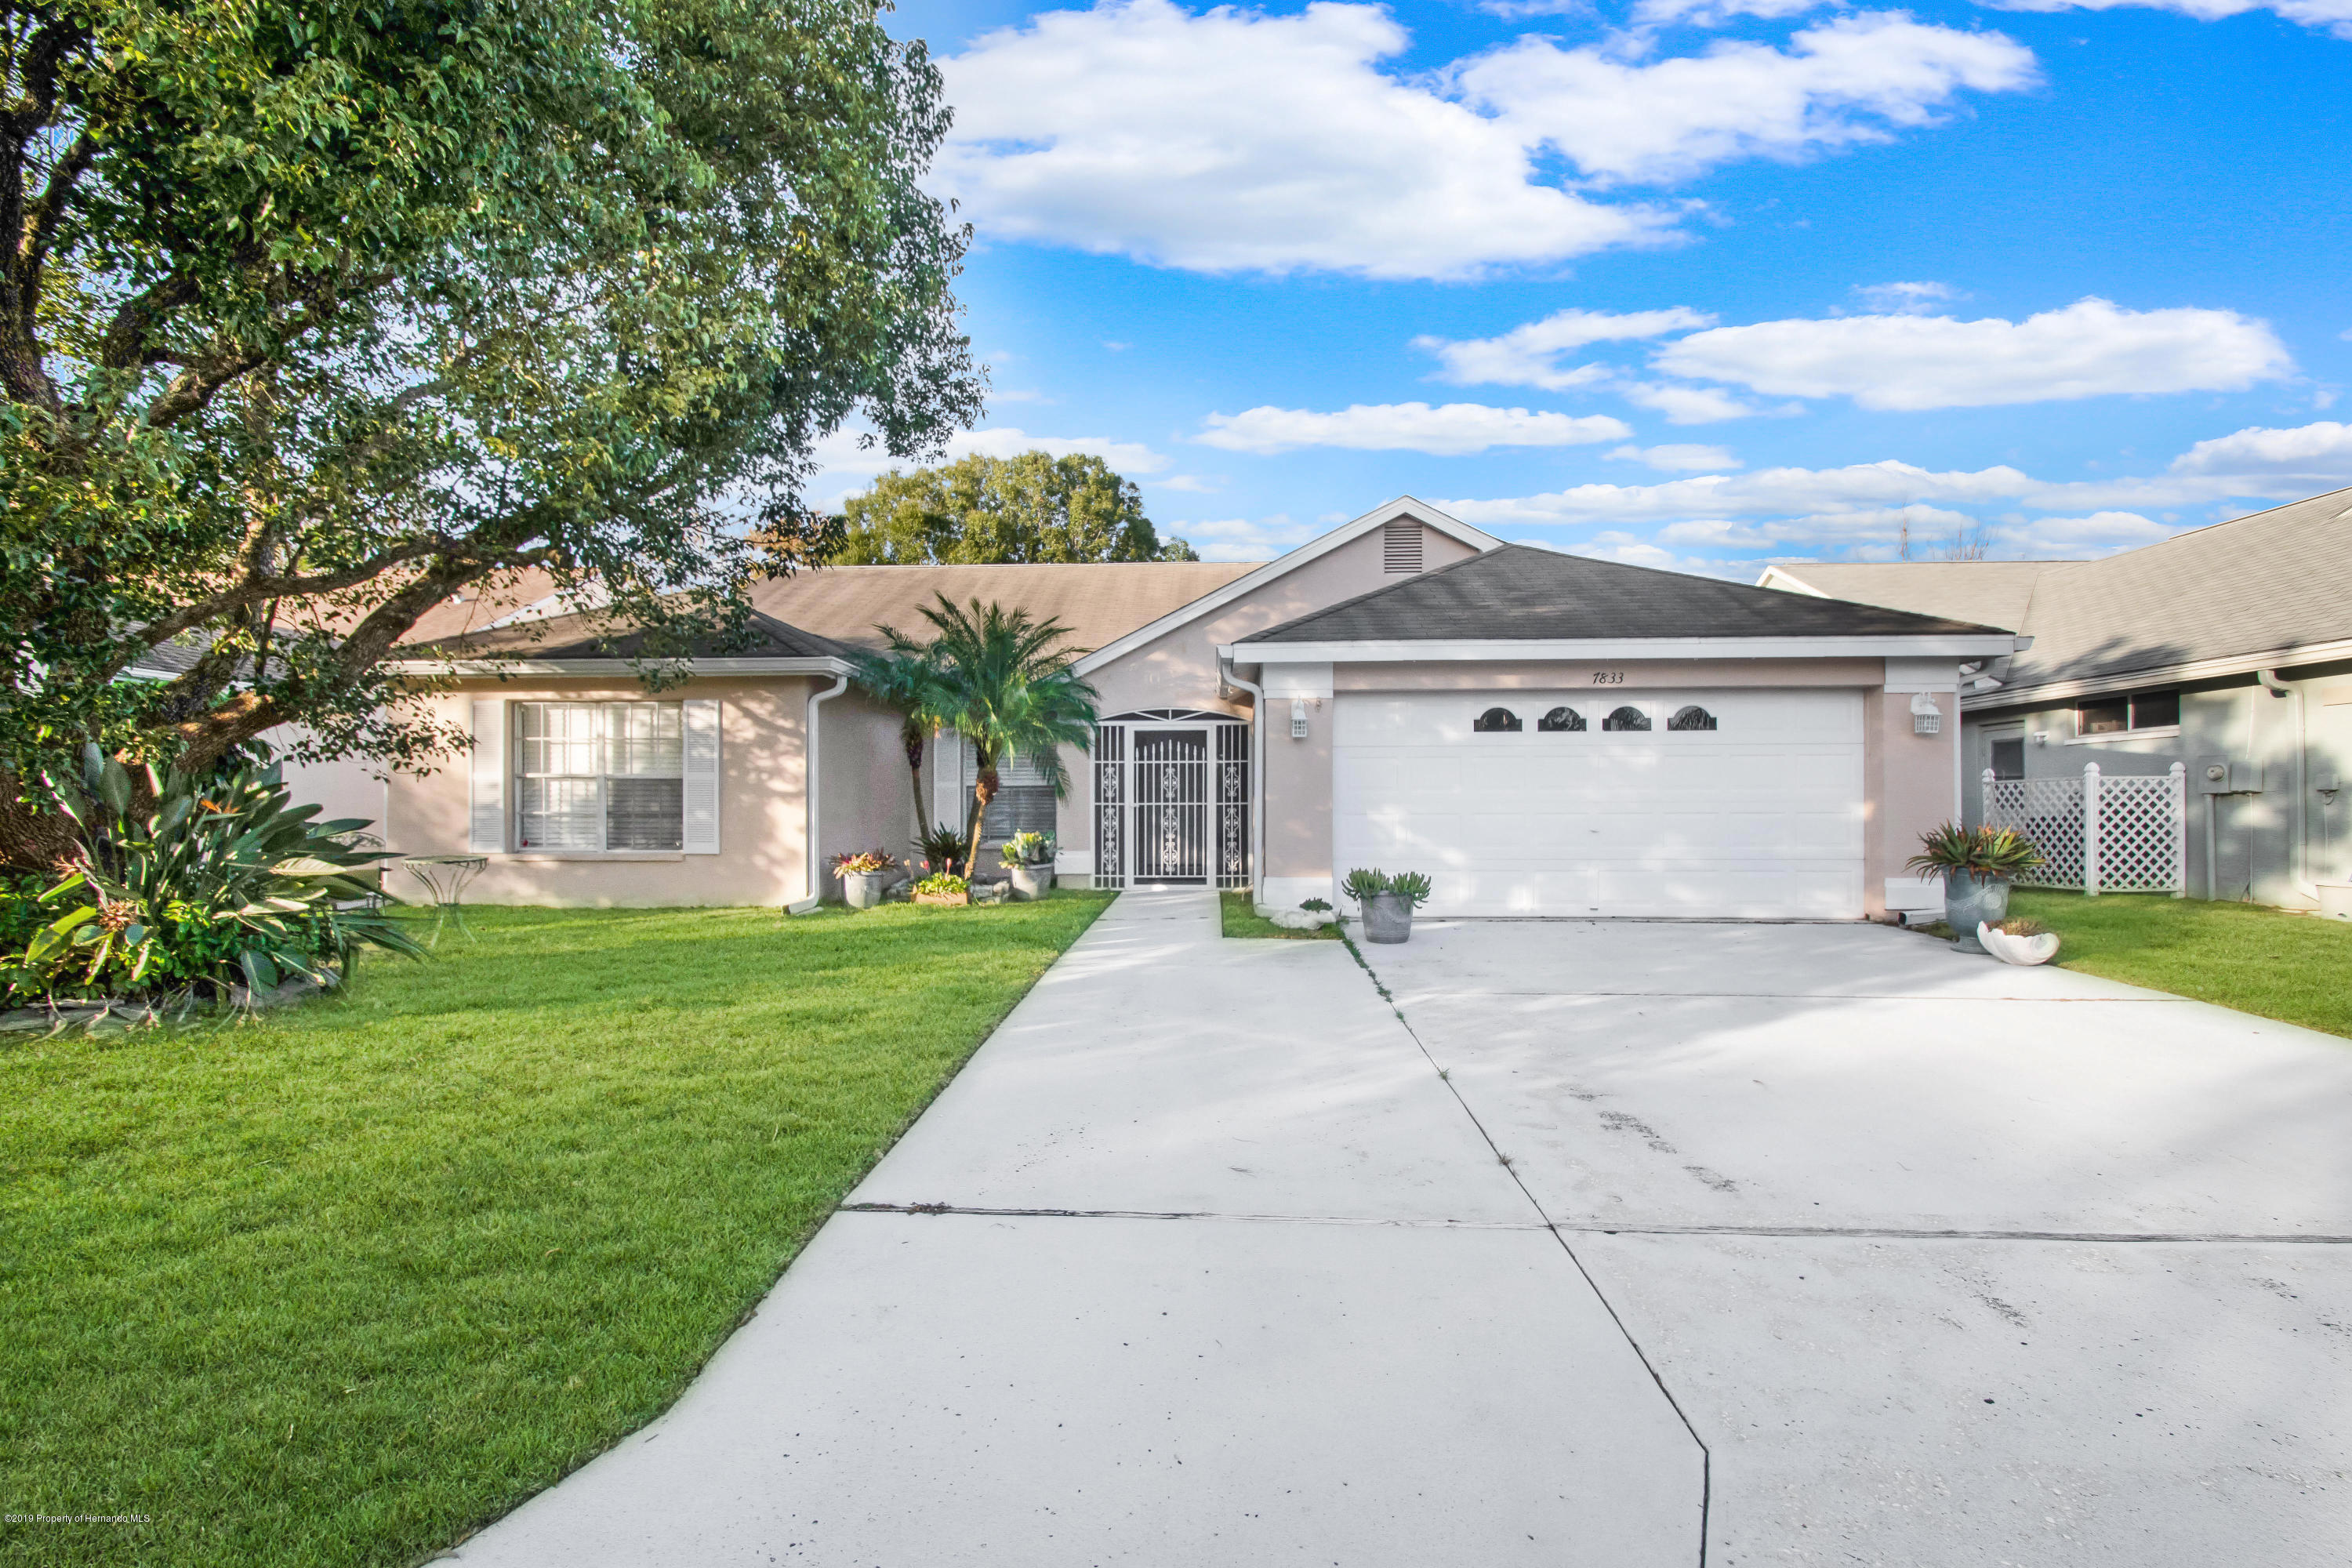 7833 Hamlet Drive, New Port Richey, Florida 34653, 4 Bedrooms Bedrooms, ,2 BathroomsBathrooms,Residential,For Sale,Hamlet,2206051